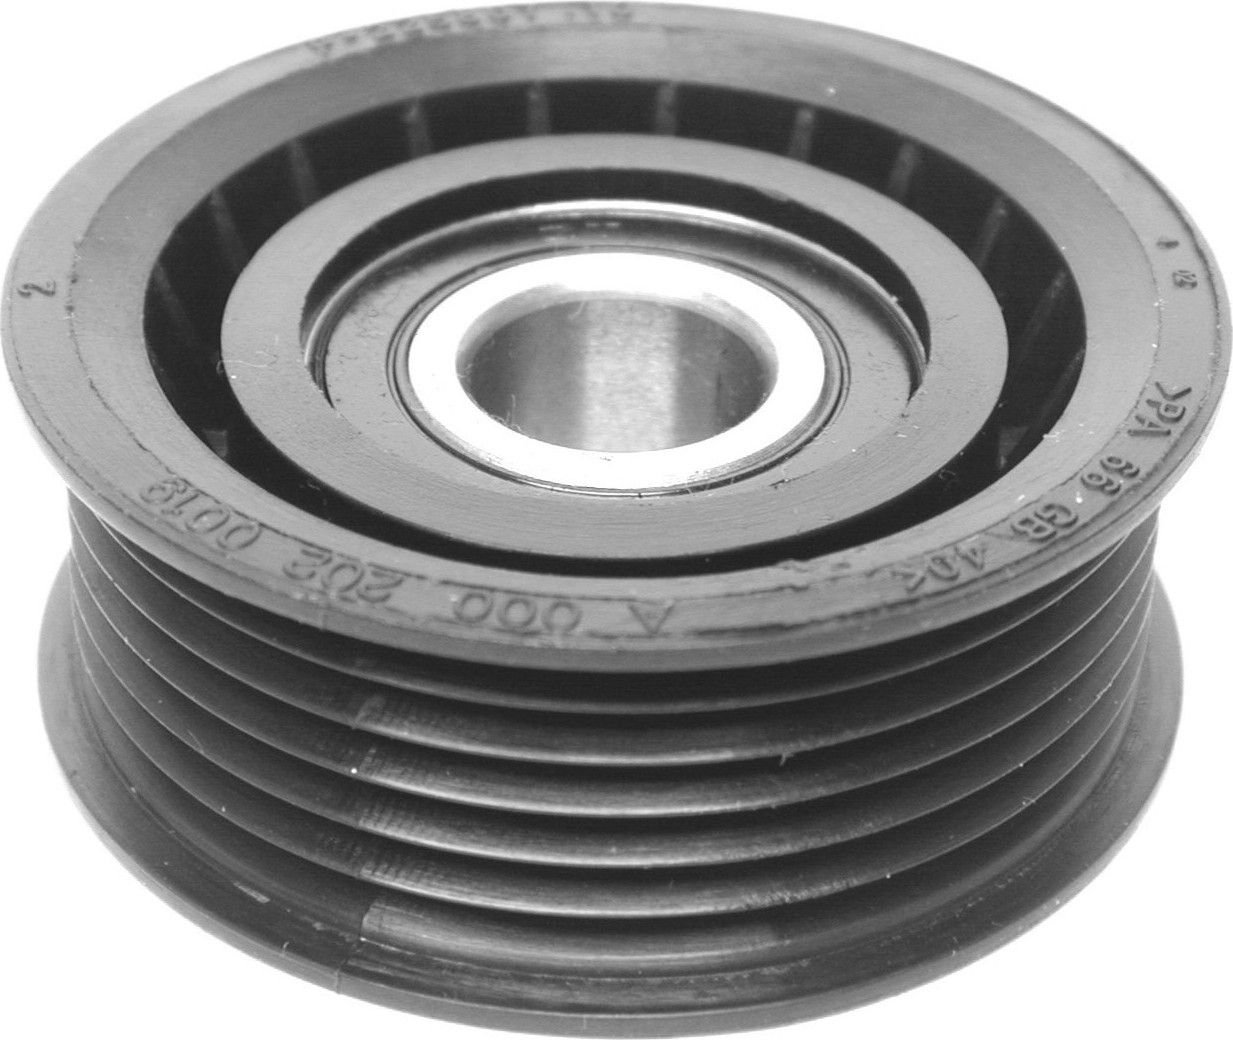 Mercedes Benz Ml350 Drive Belt Idler Pulley Replacement Dayco 2005 Parts 2003 Uro 0002020019